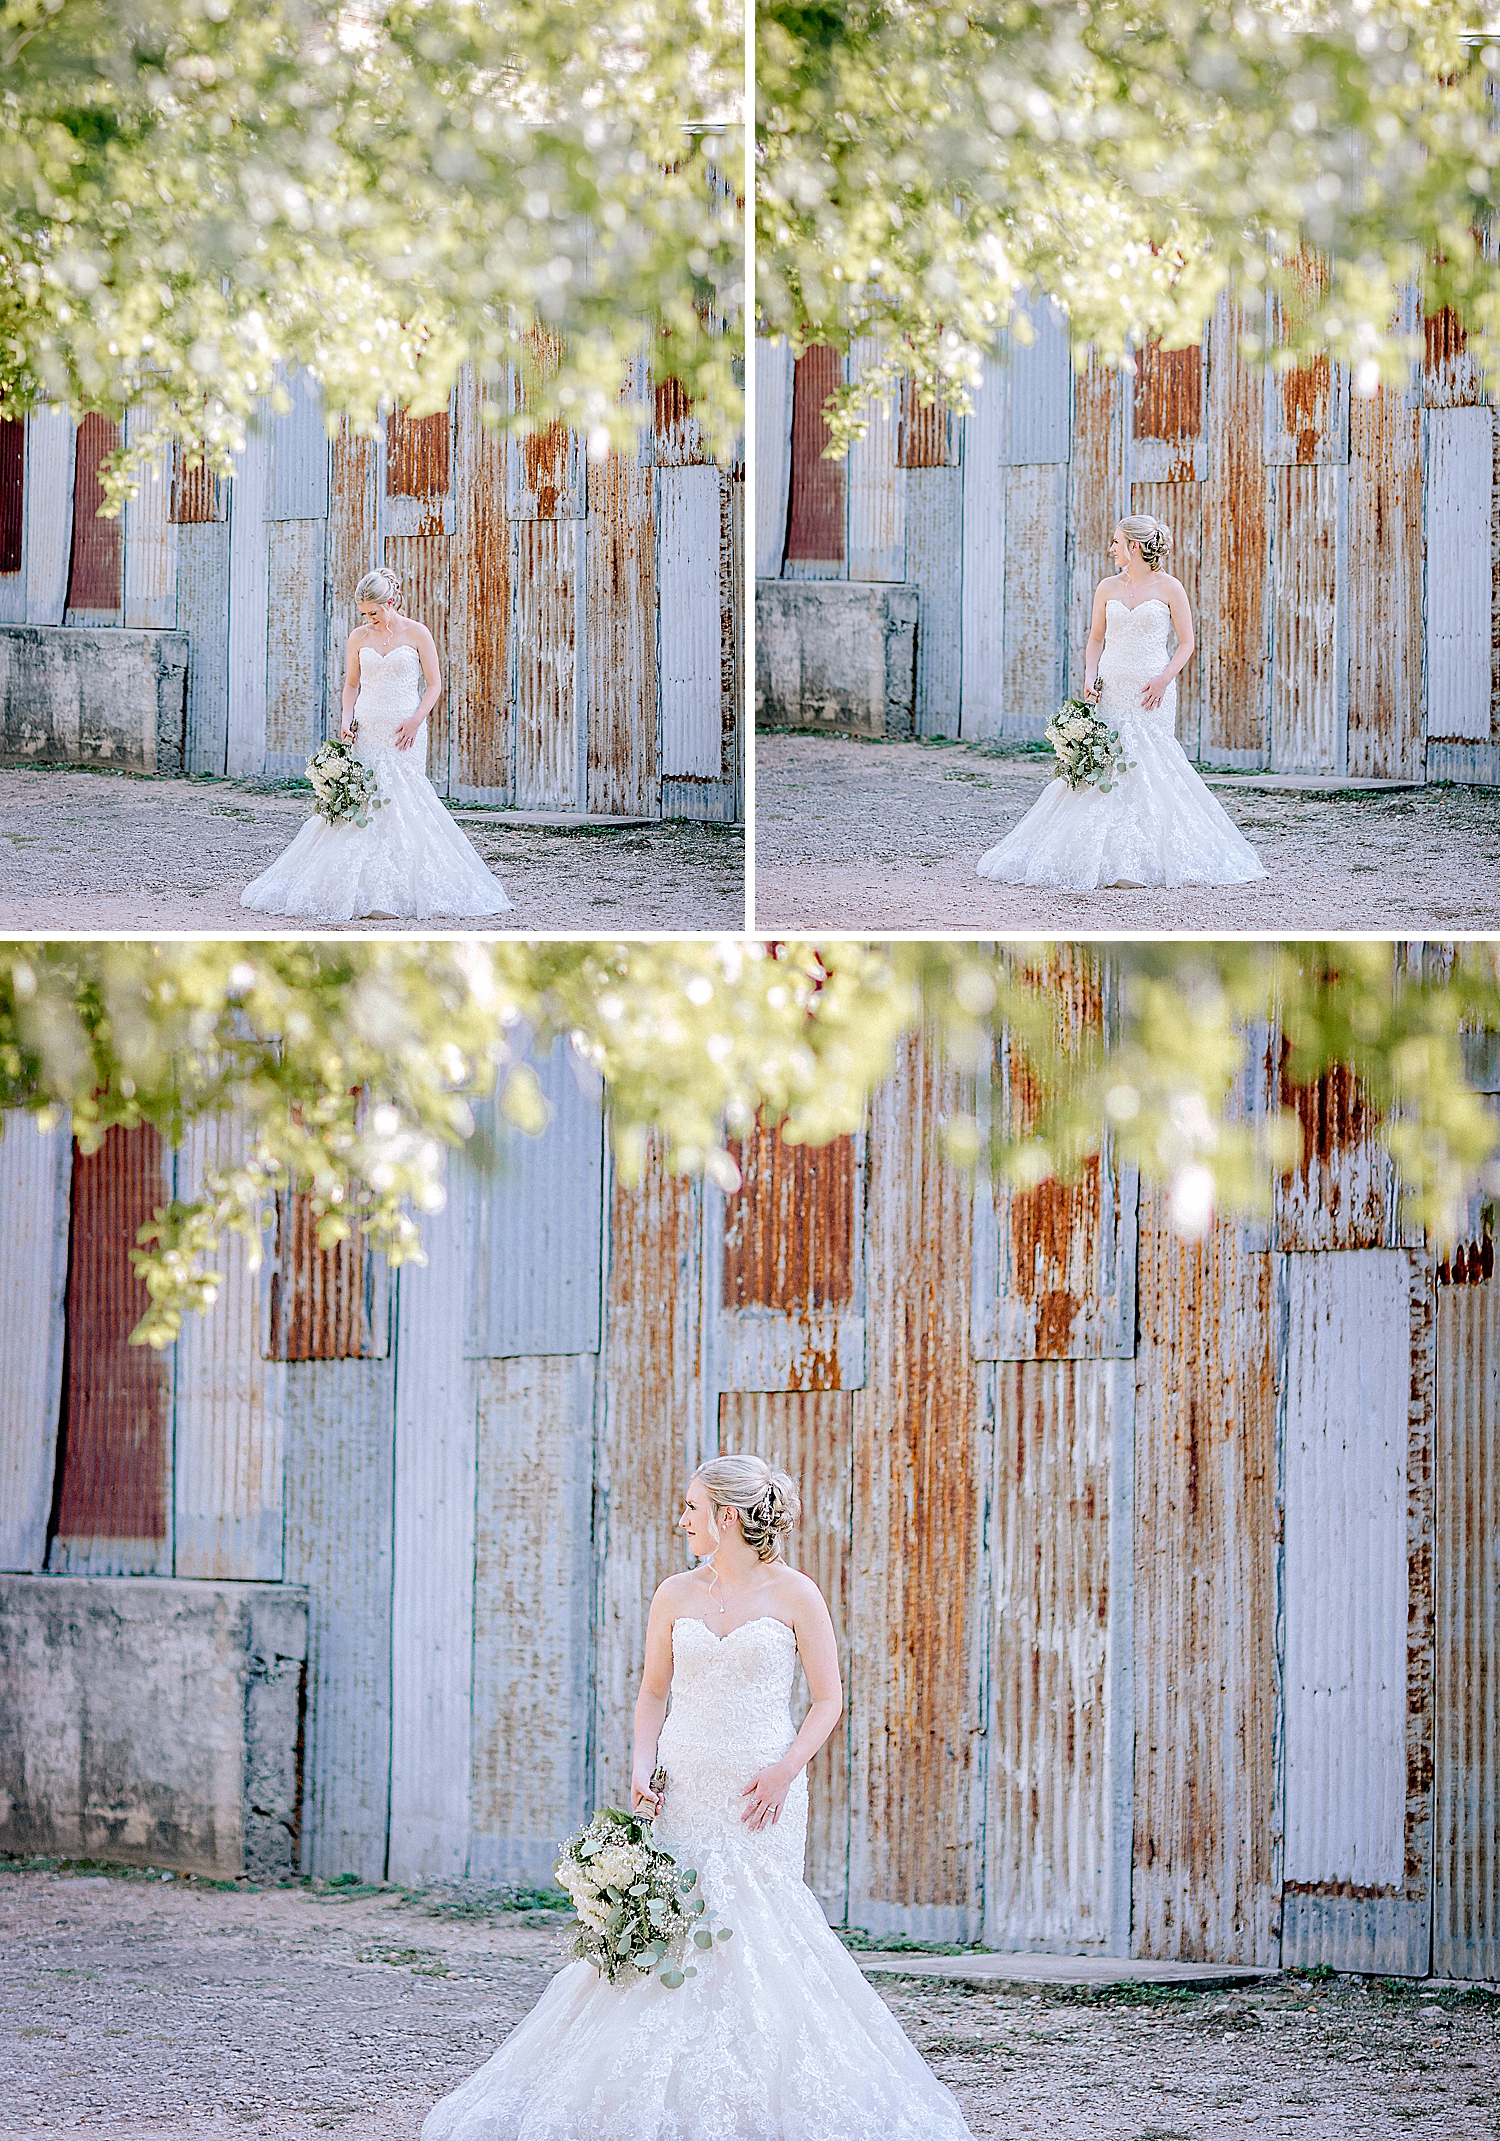 Carly-Barton-Photography-Bridal-Photos-Gruene-Rustic-New-Braunfels-Wedding-Photographer_0003.jpg